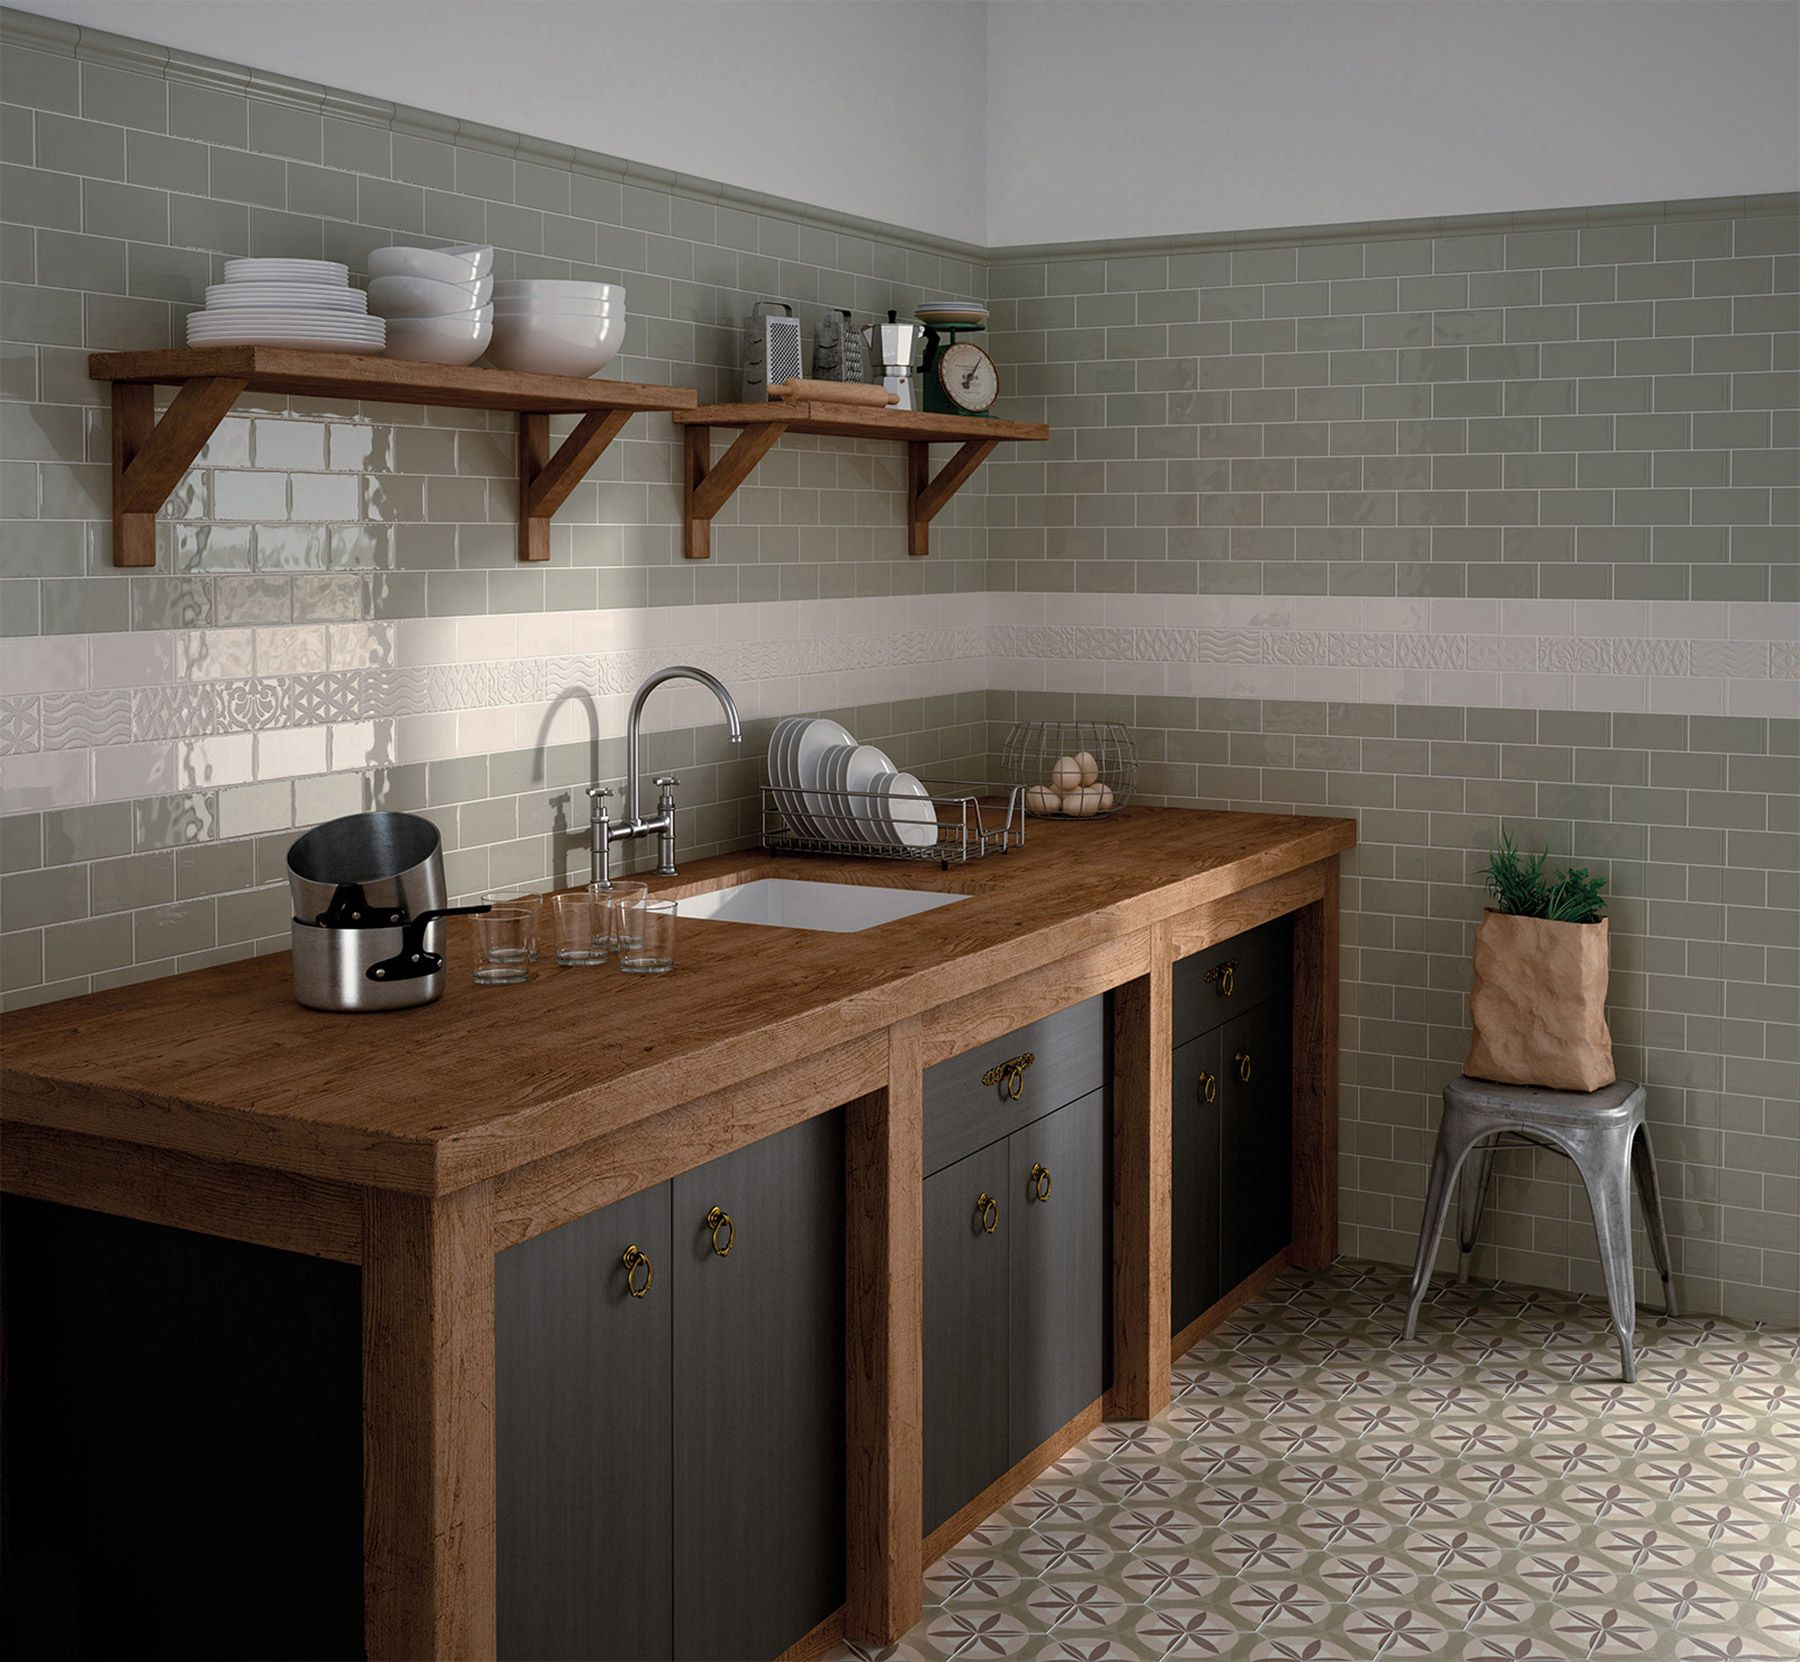 Lately, Shane and I have been discussing making some changes in our house, more specifically kitchen design changes. We are toying with the idea of moving i